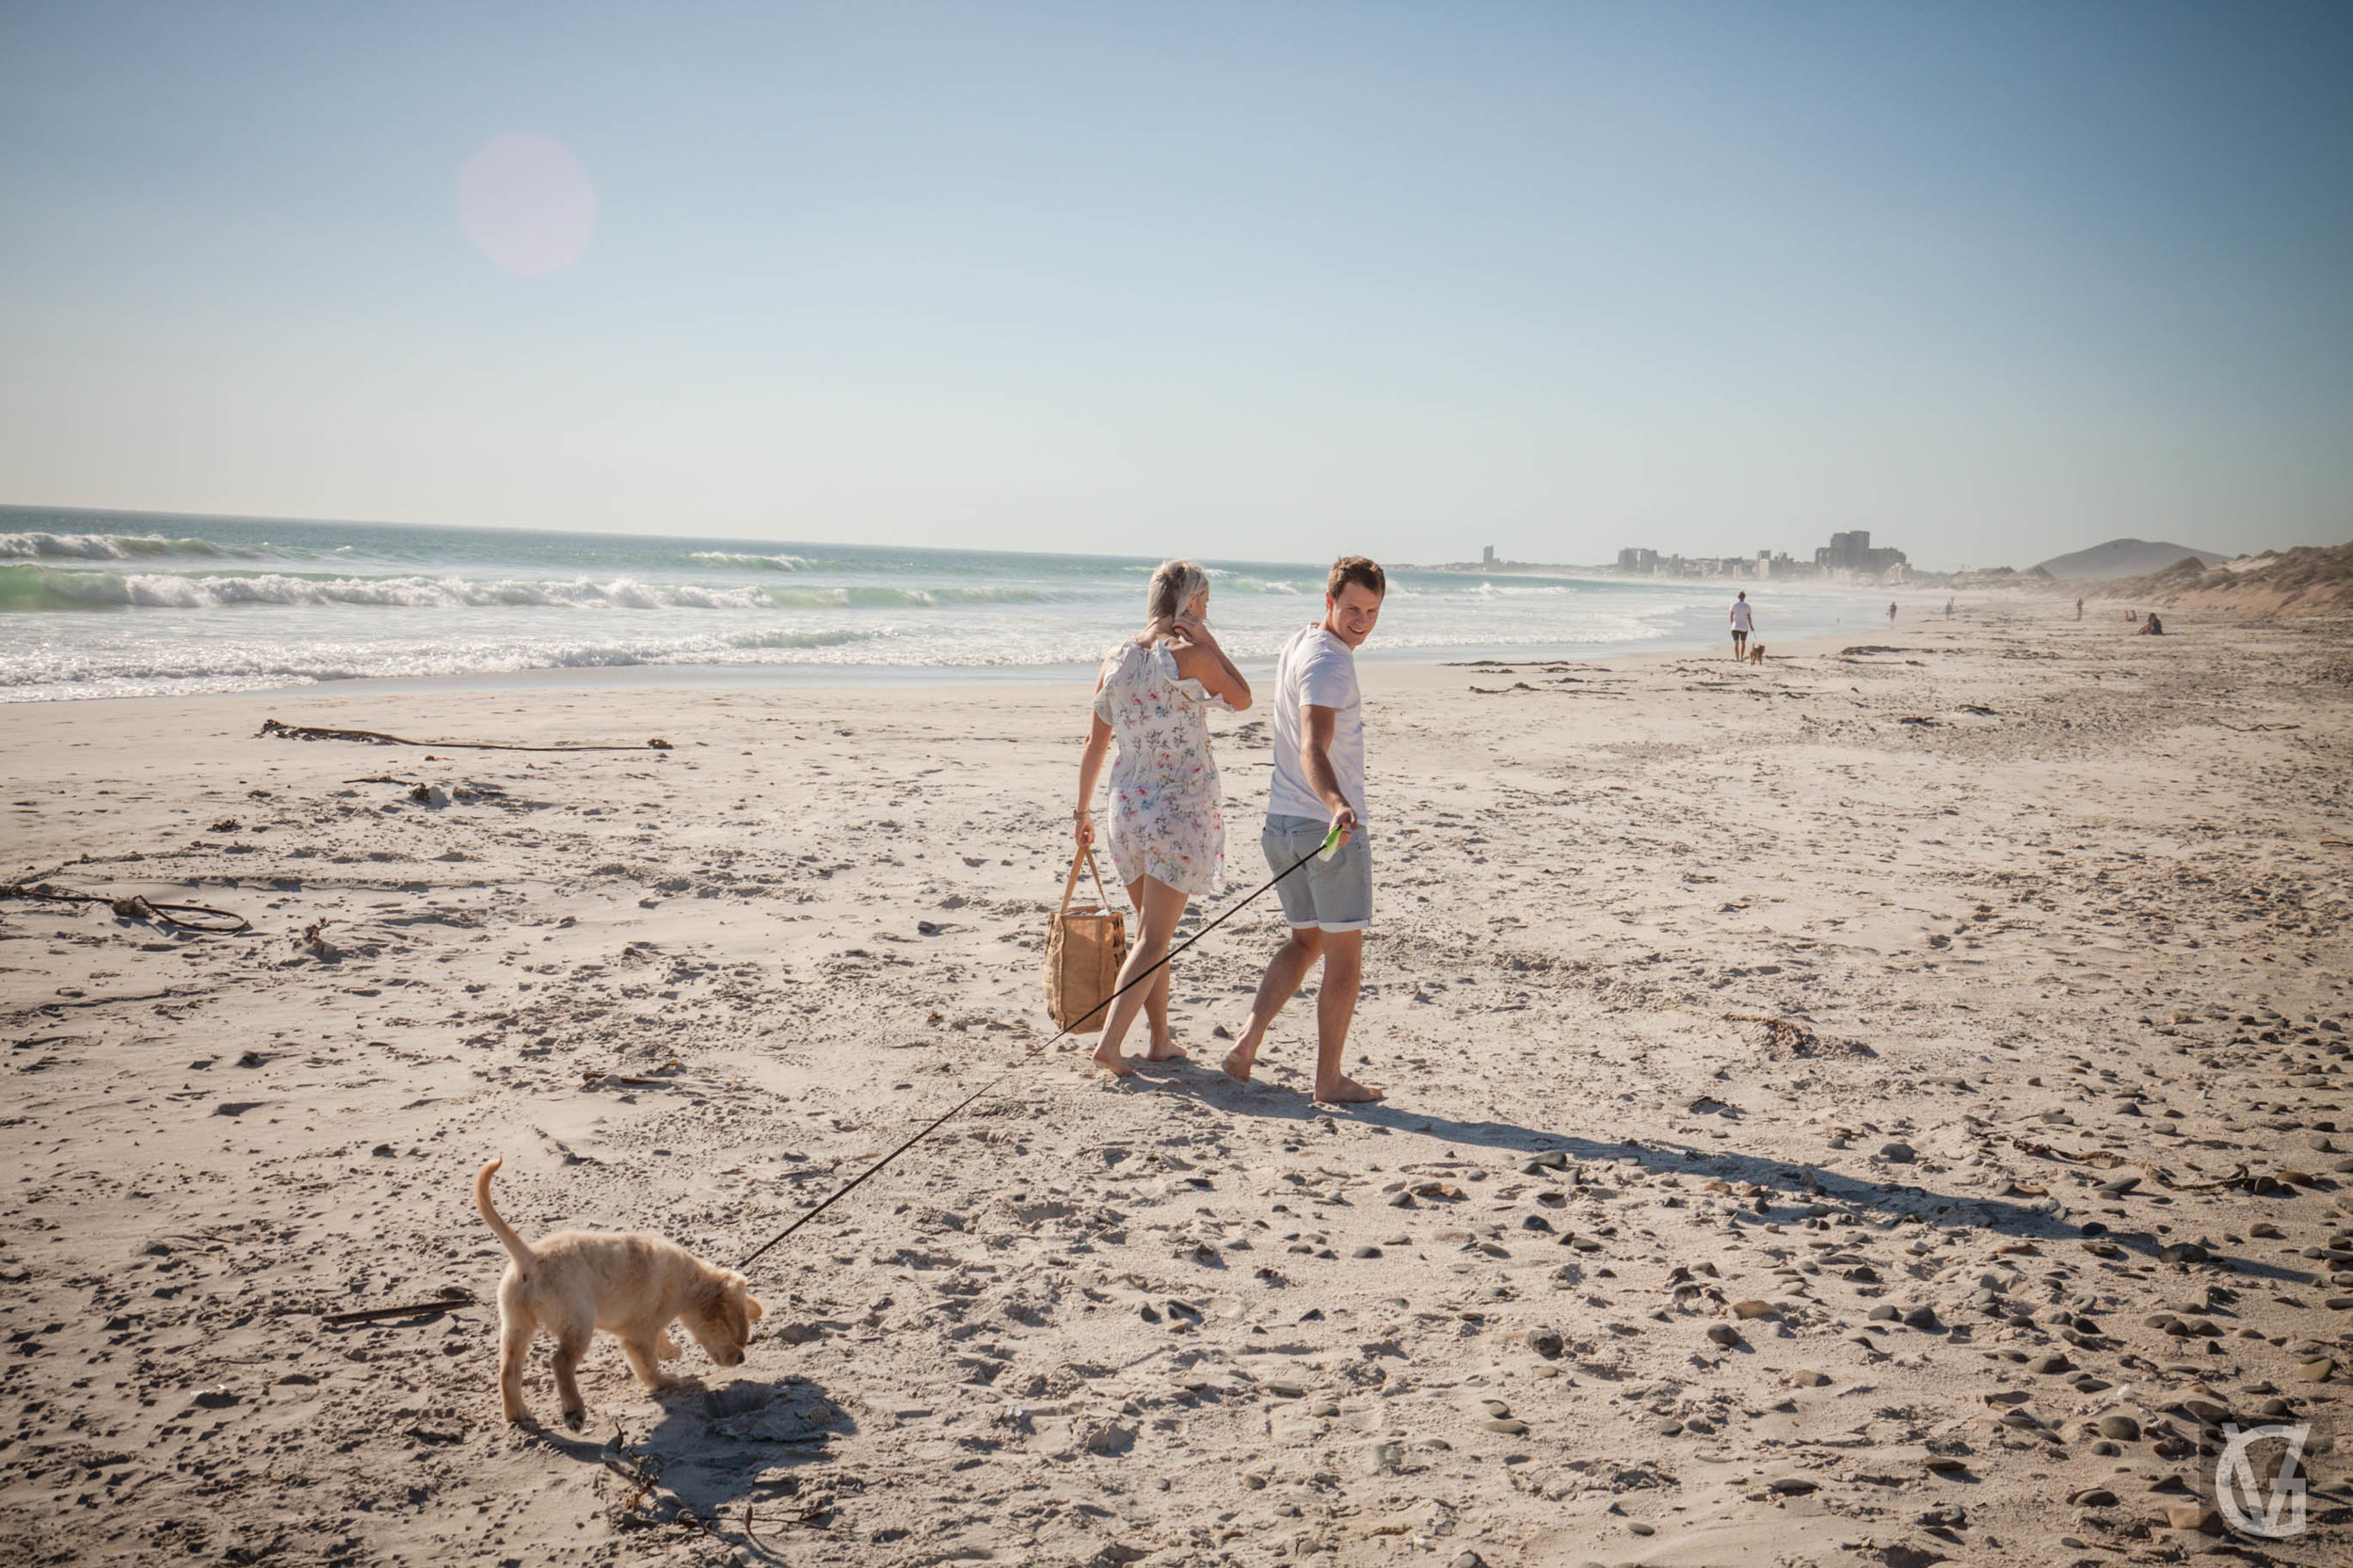 An engaged couple with their puppy take a walk on the beach